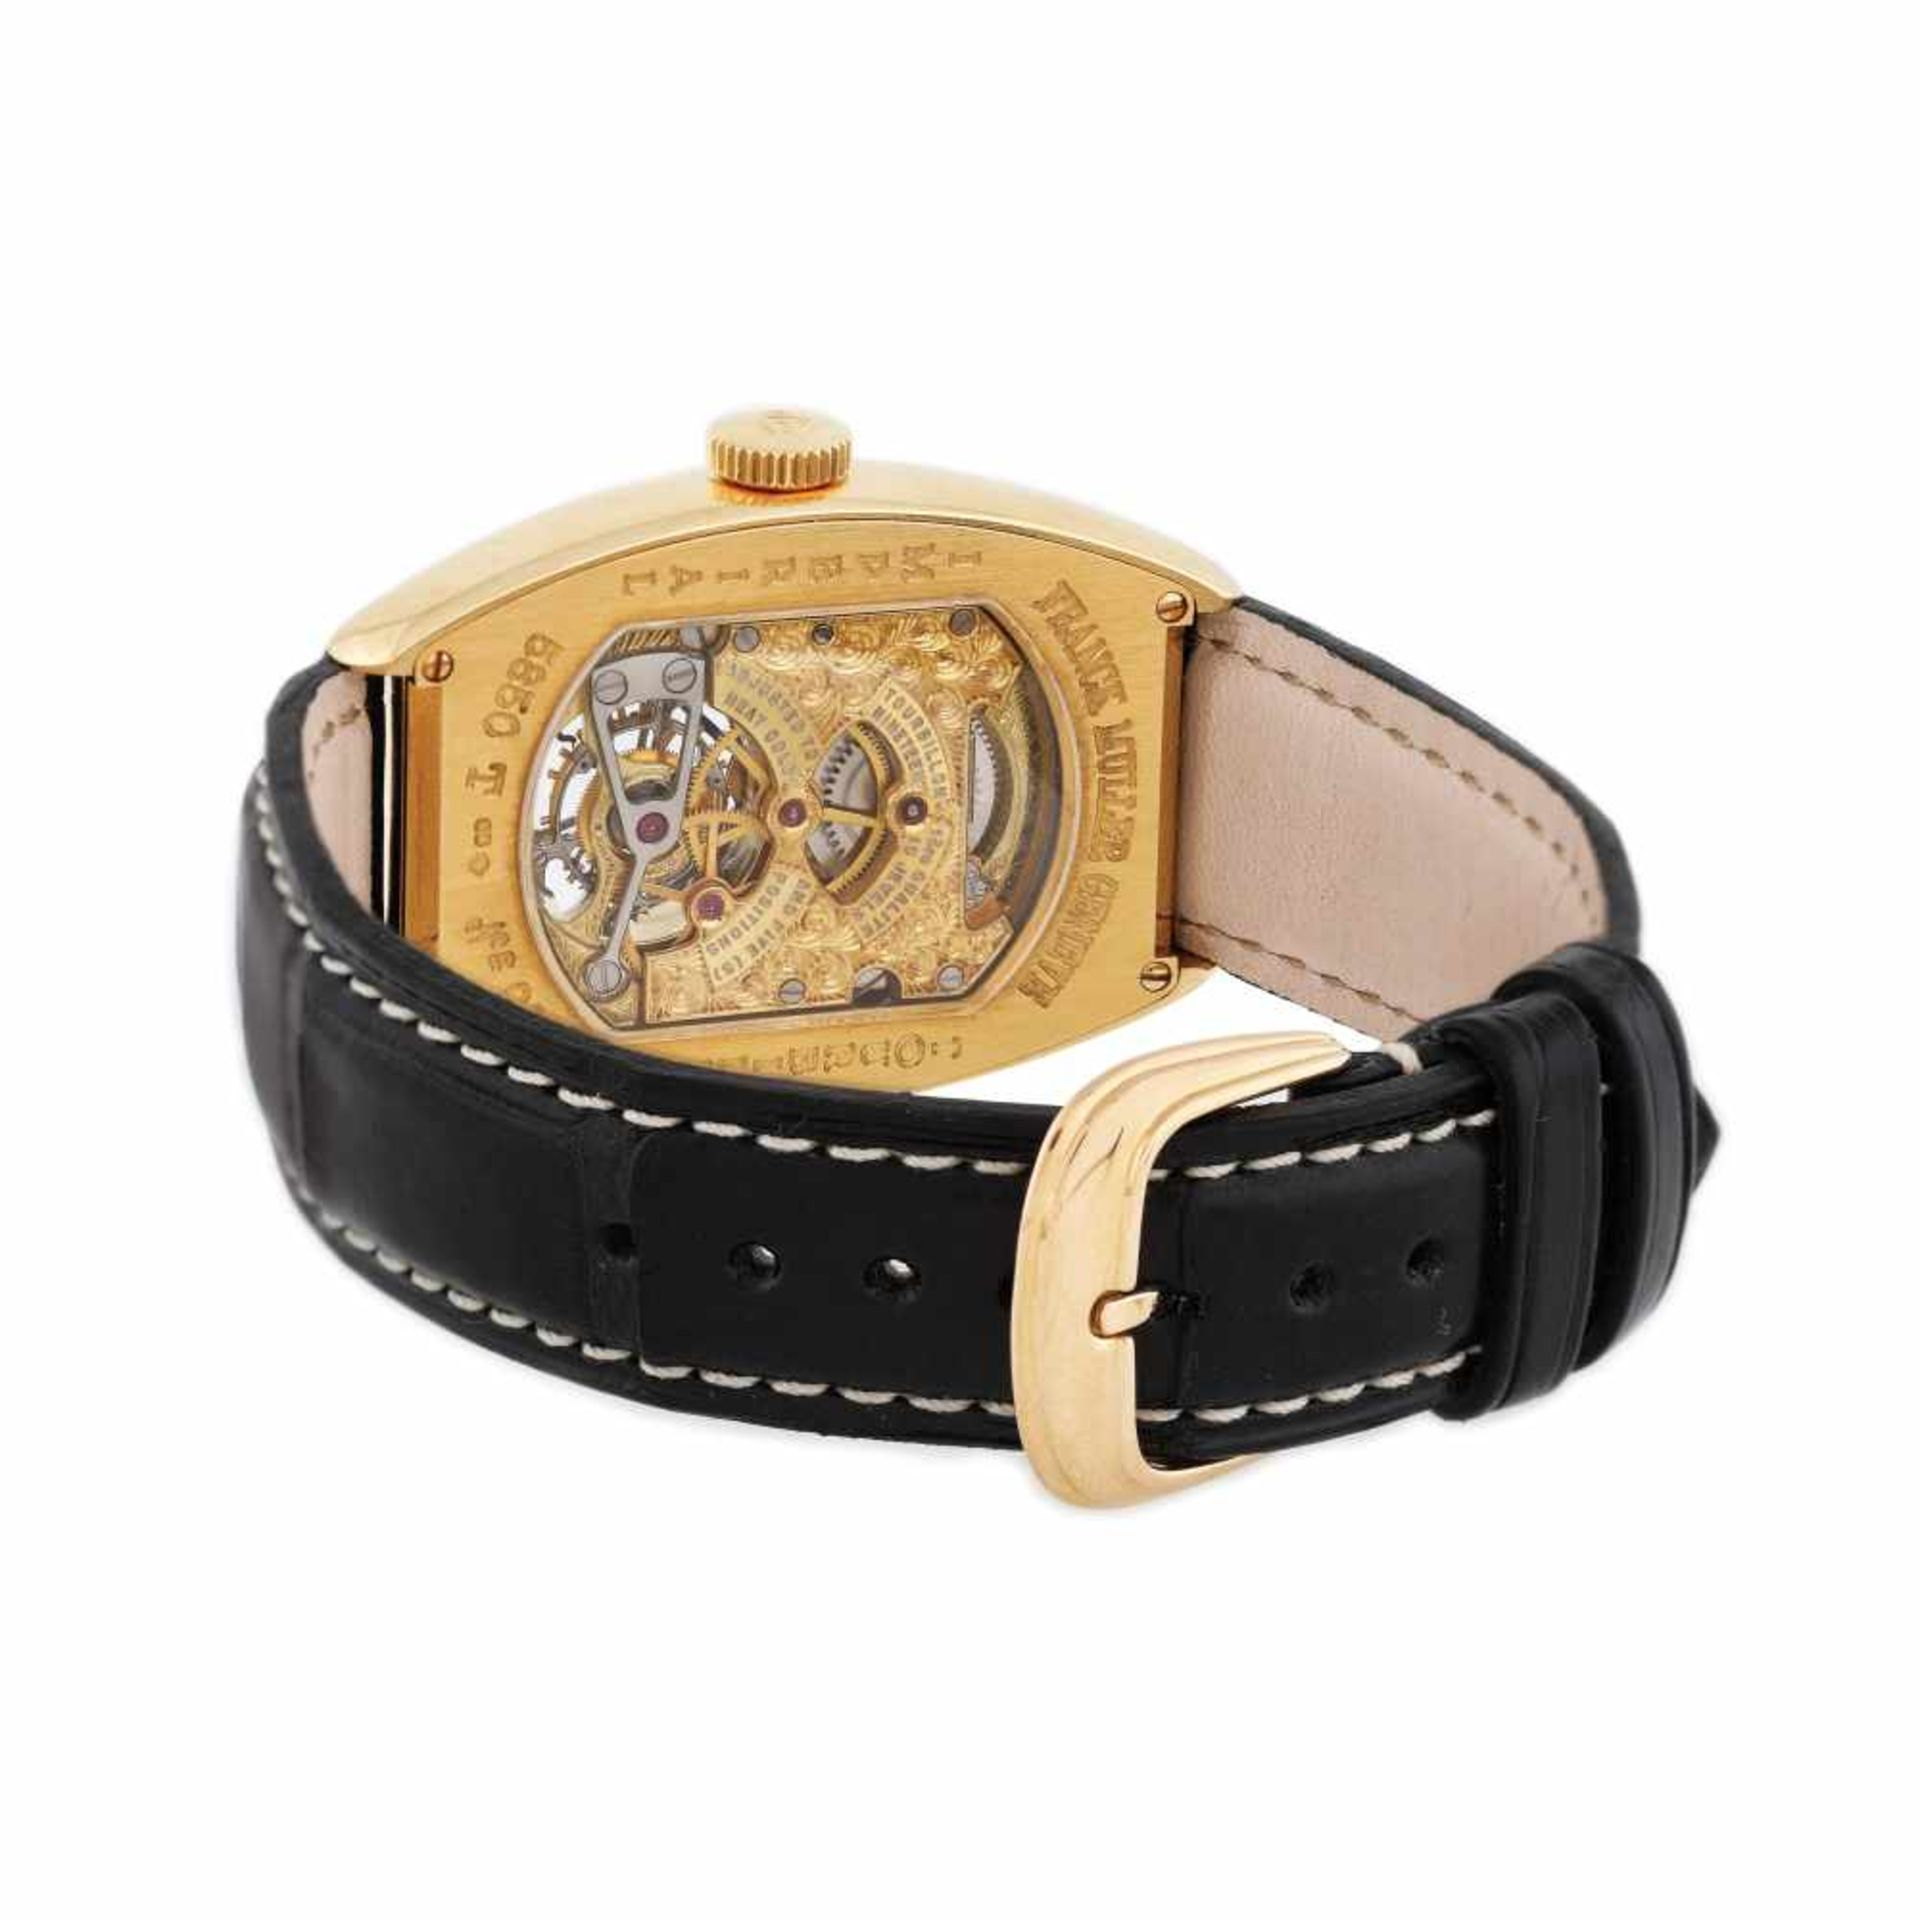 Franck Muller Tourbillion wristwatch, gold, men - Bild 2 aus 4